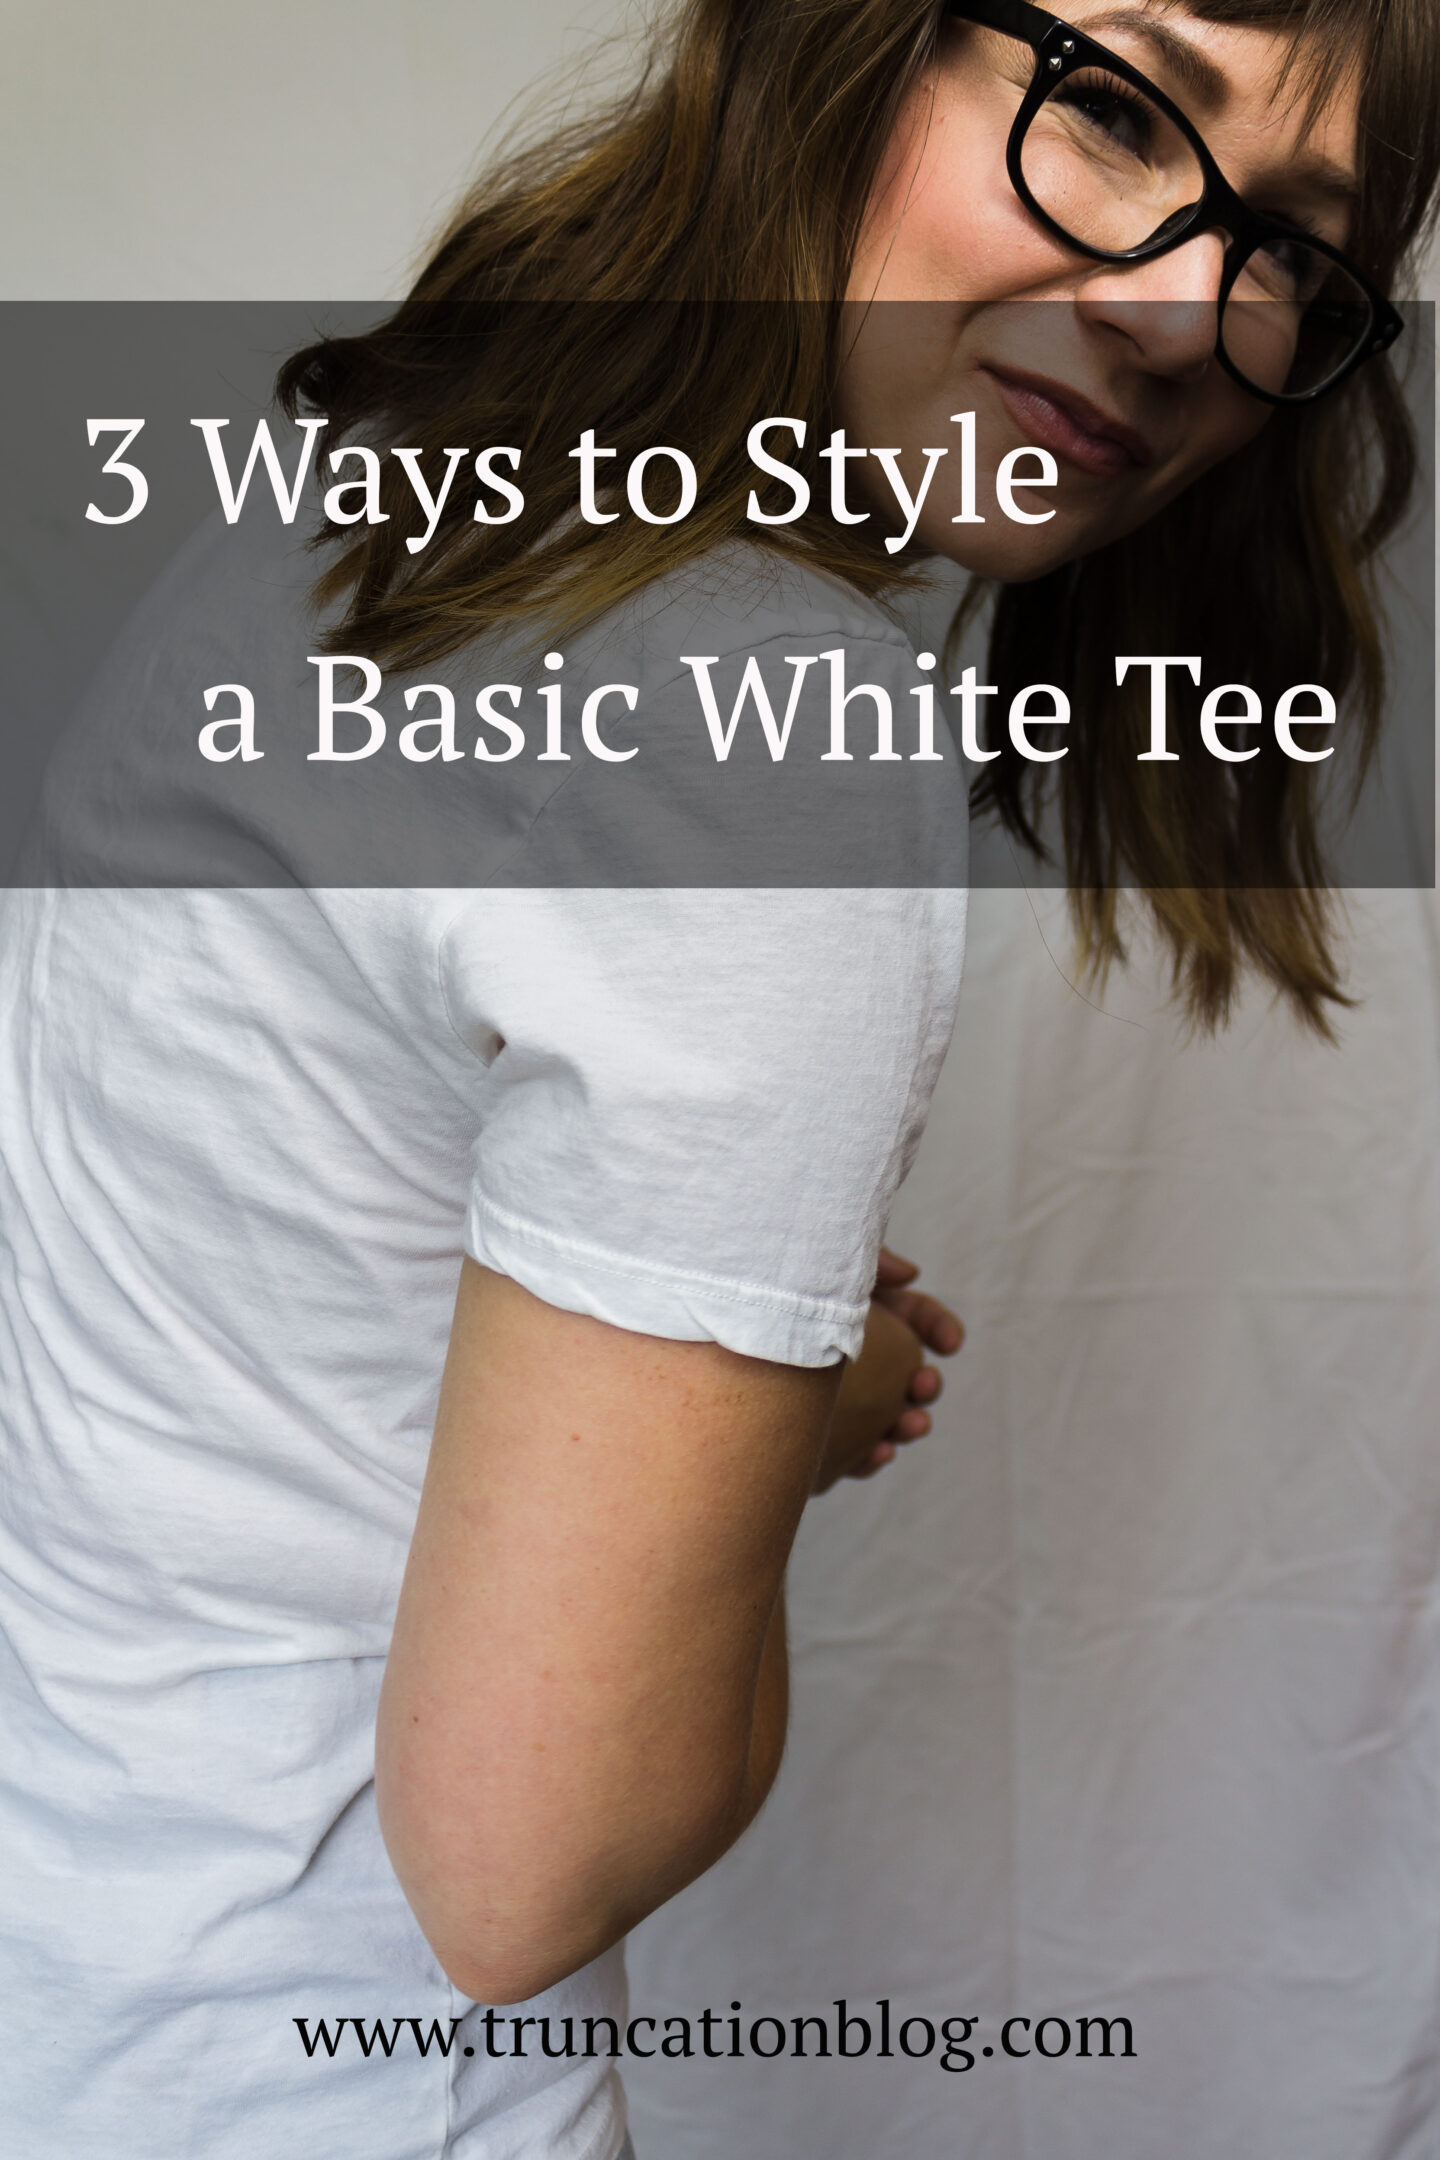 3 Ways to Style a Basic White Tee: featuring Everlane